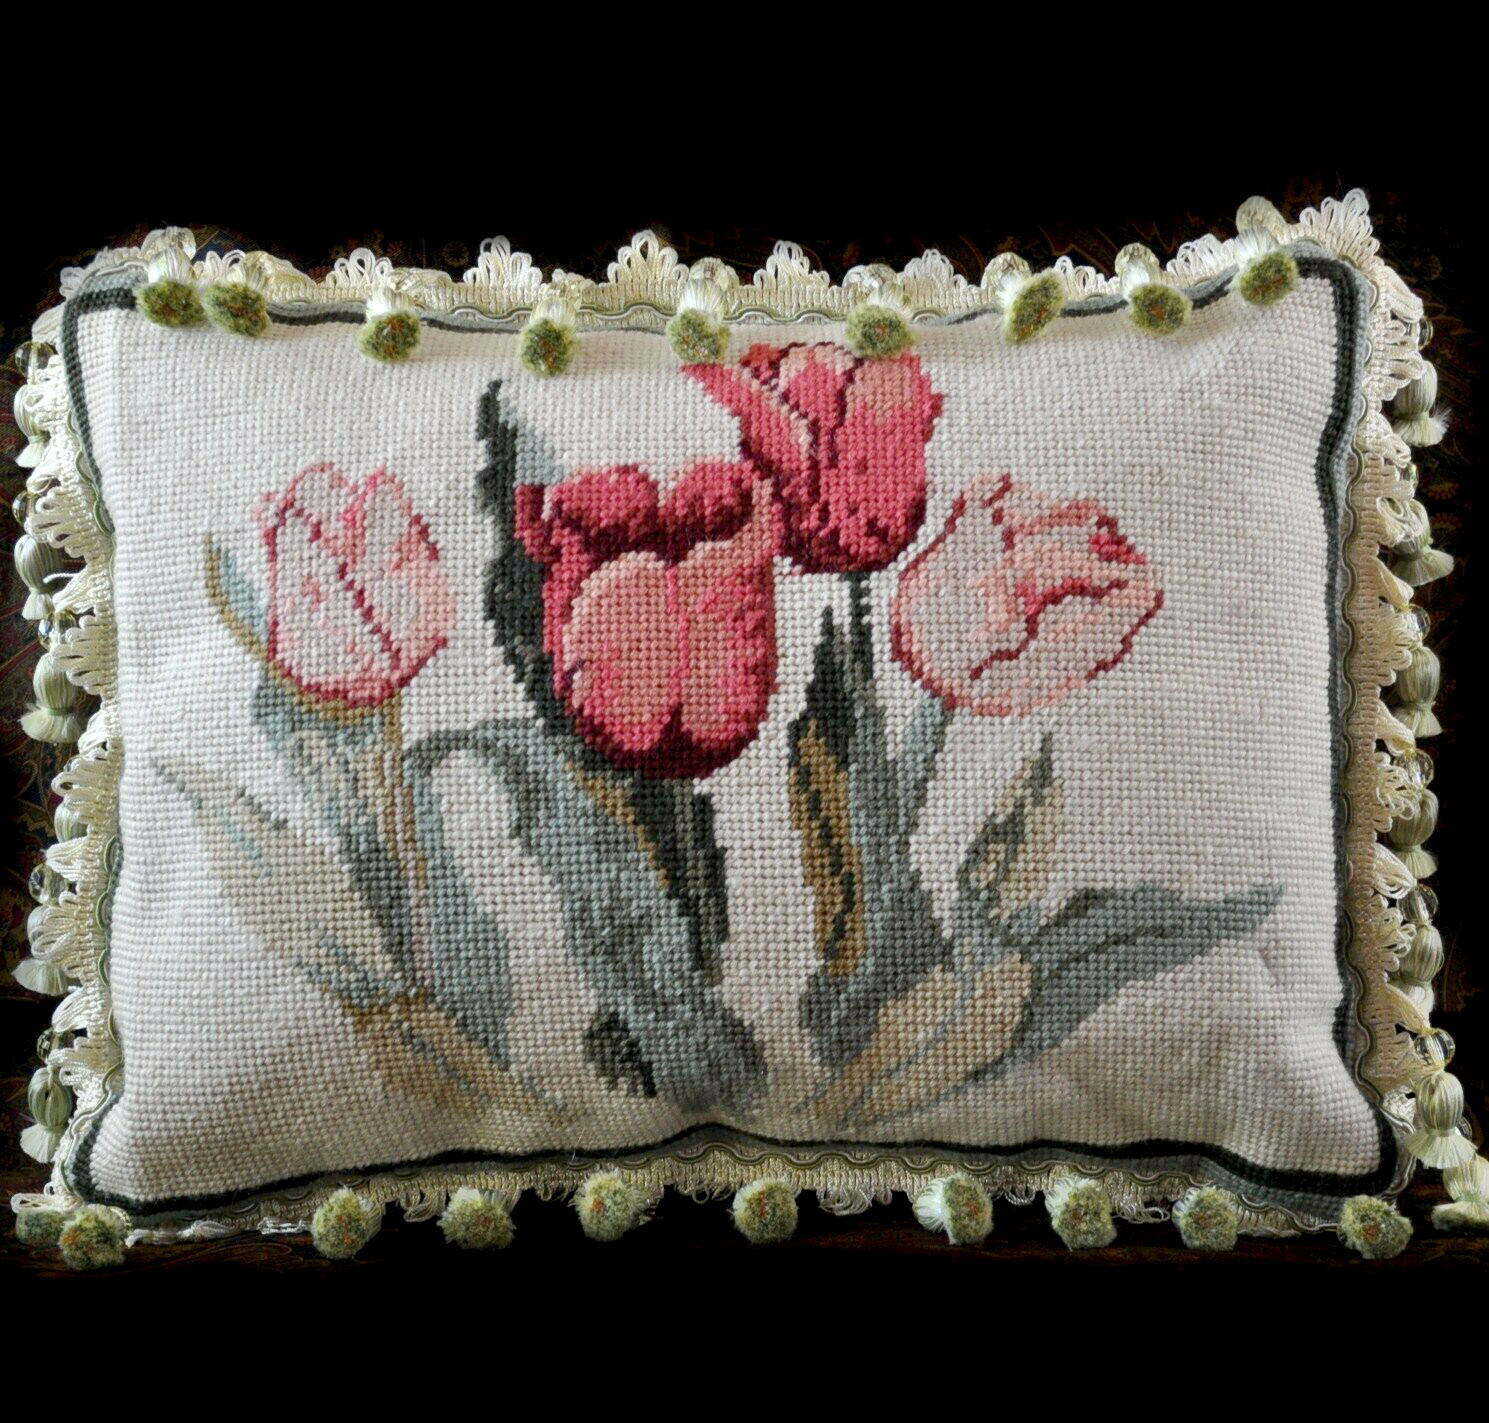 11 x 15 handmade custom made floral tulips wool needlepoint throw pillow case cushion cover with crystal beaded fringe 12980871